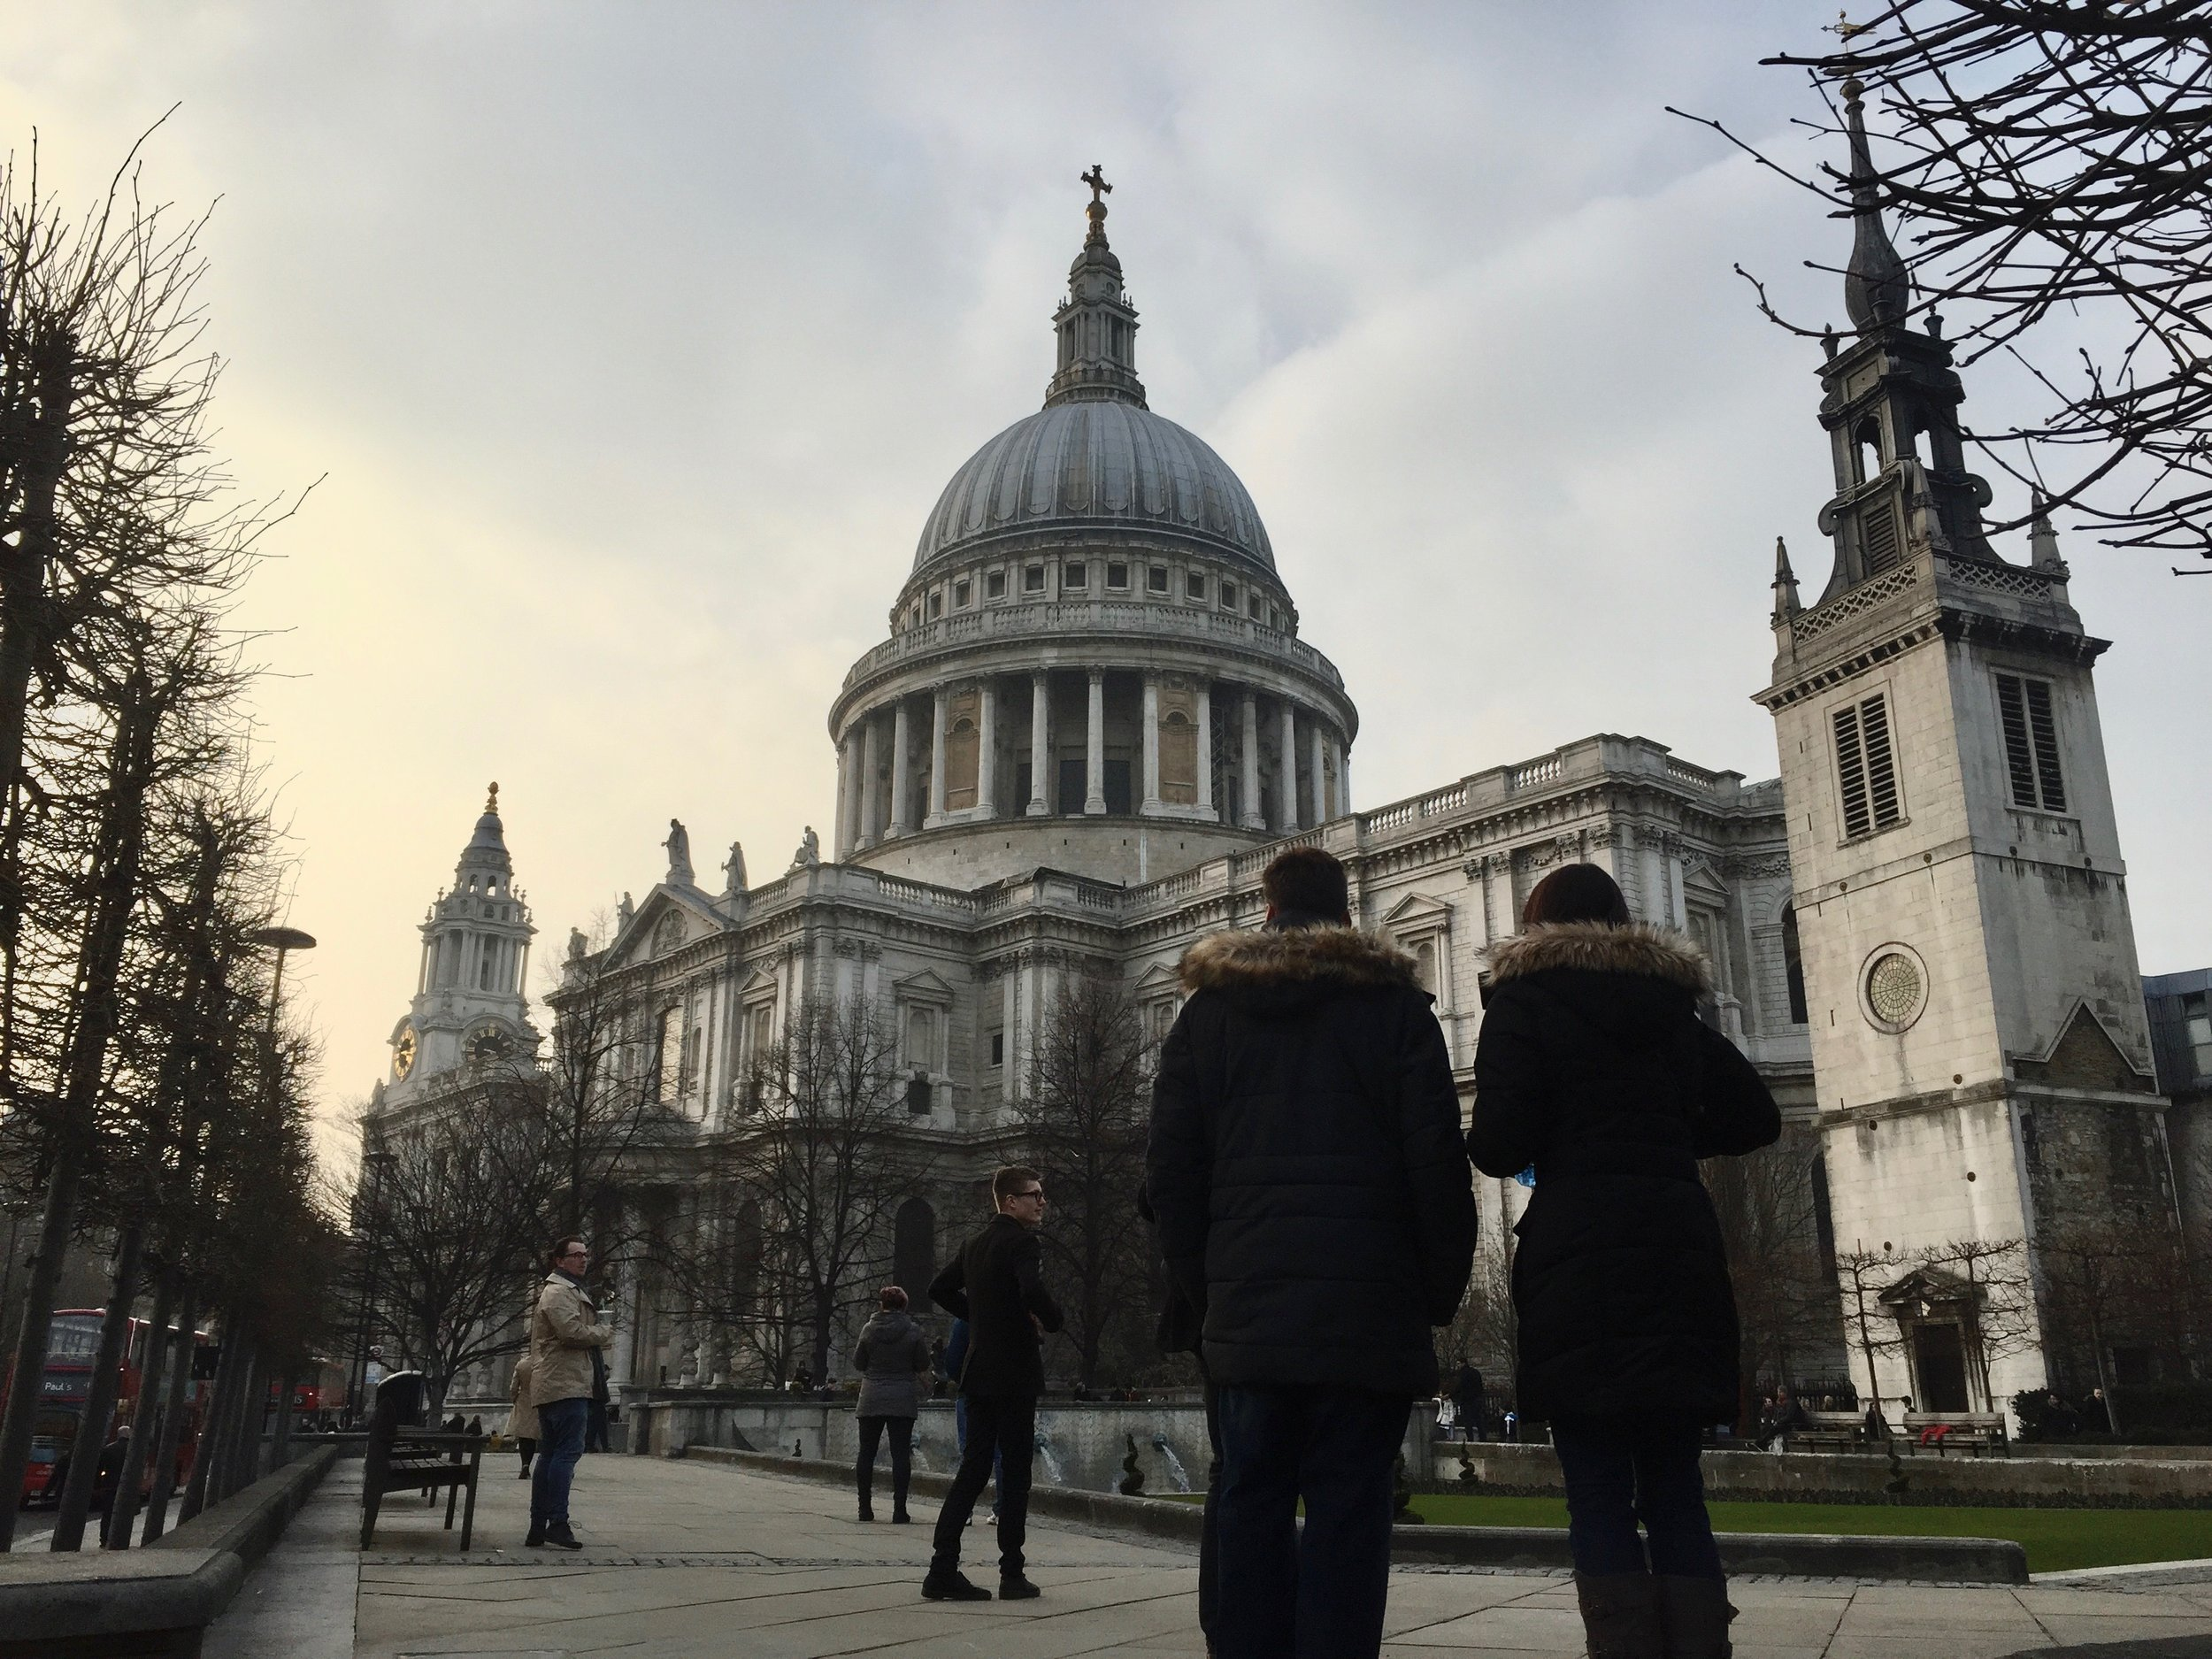 Saint Paul's Cathedral    photo by L.D. Van Cleave